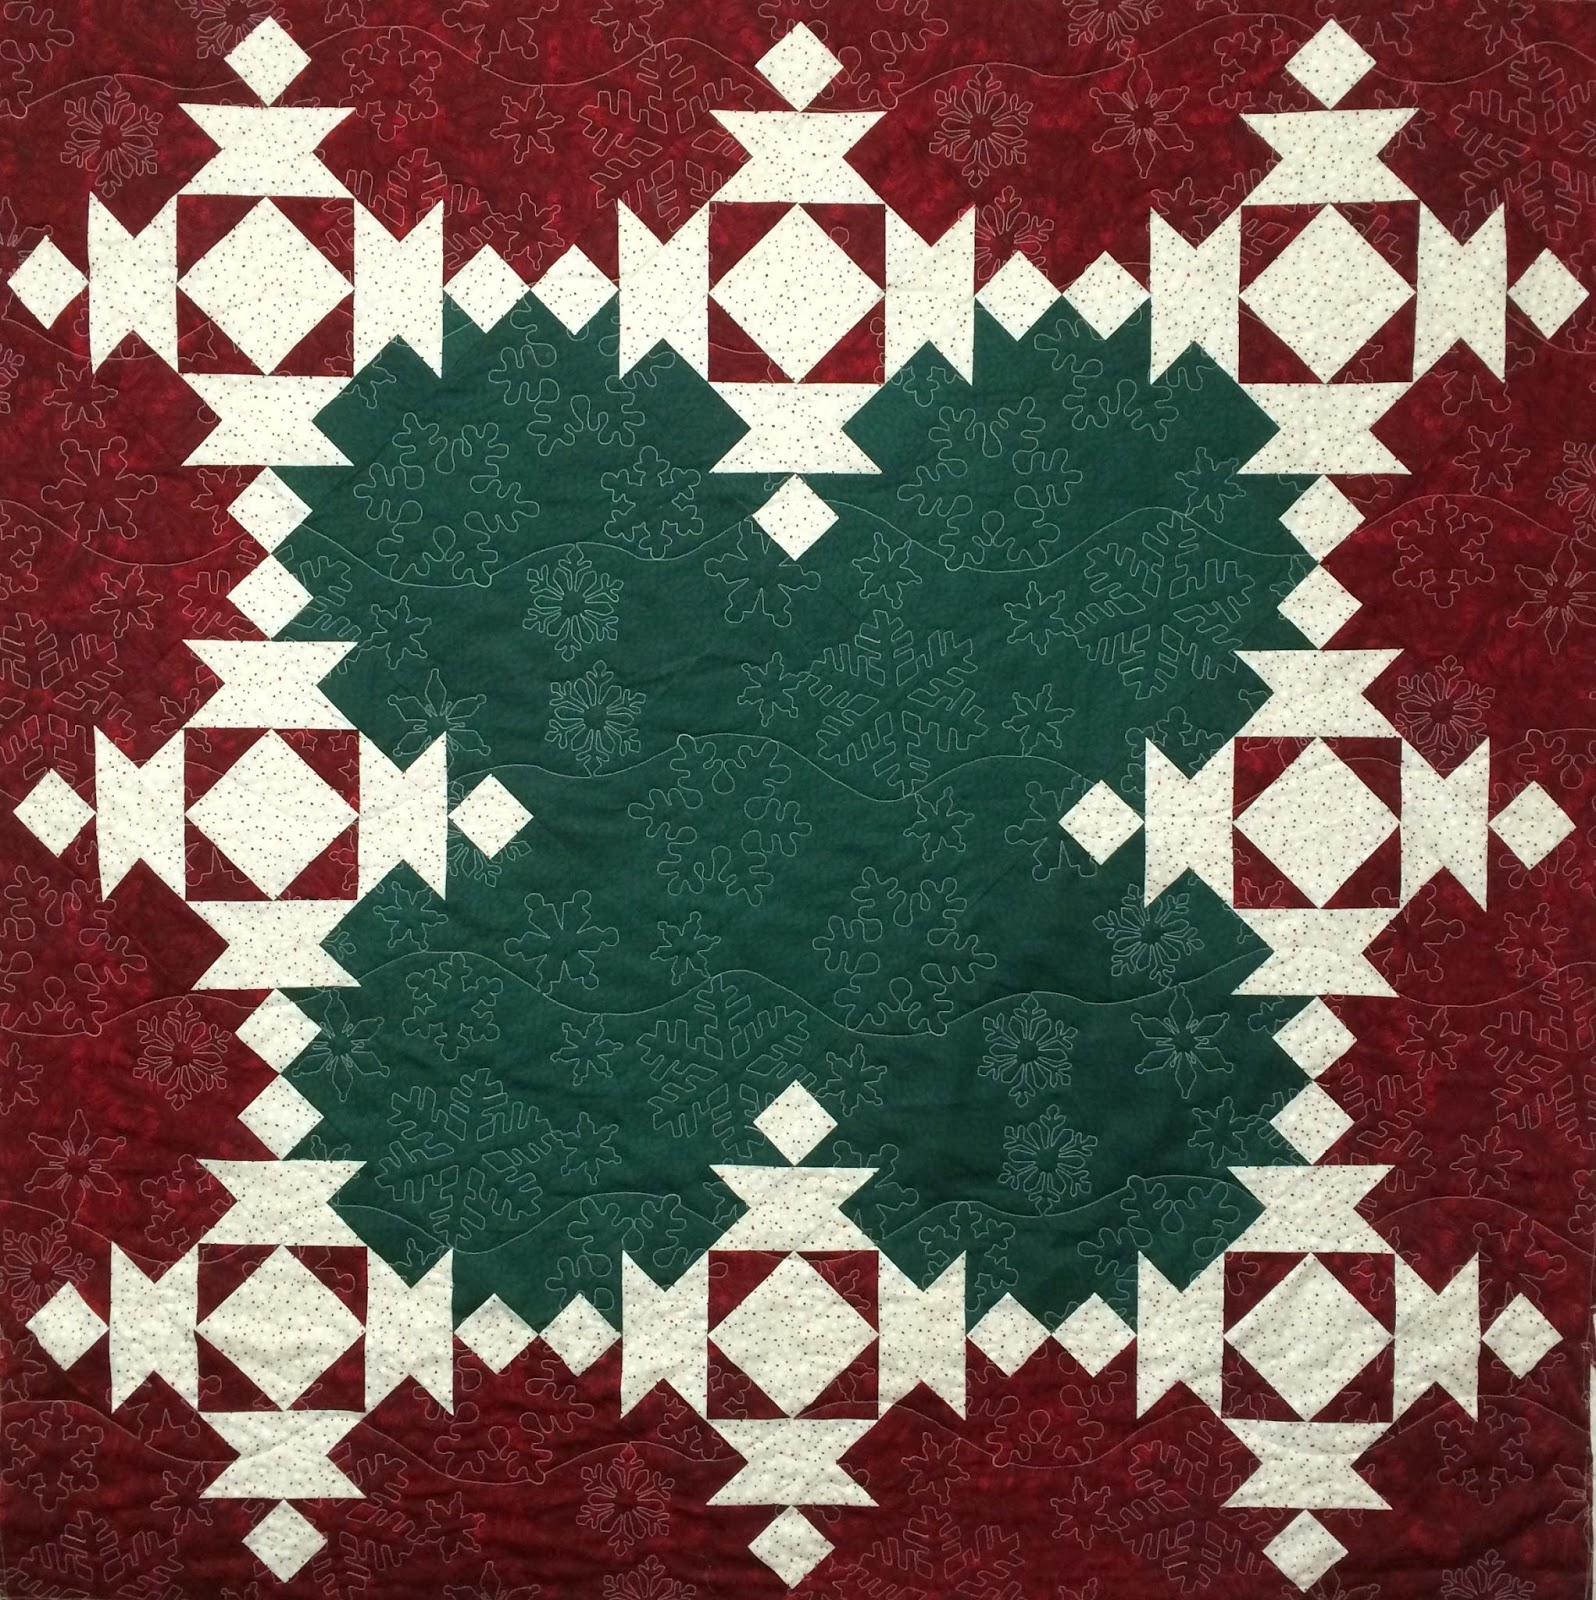 Lori Becker's Christmas Tree Skirt